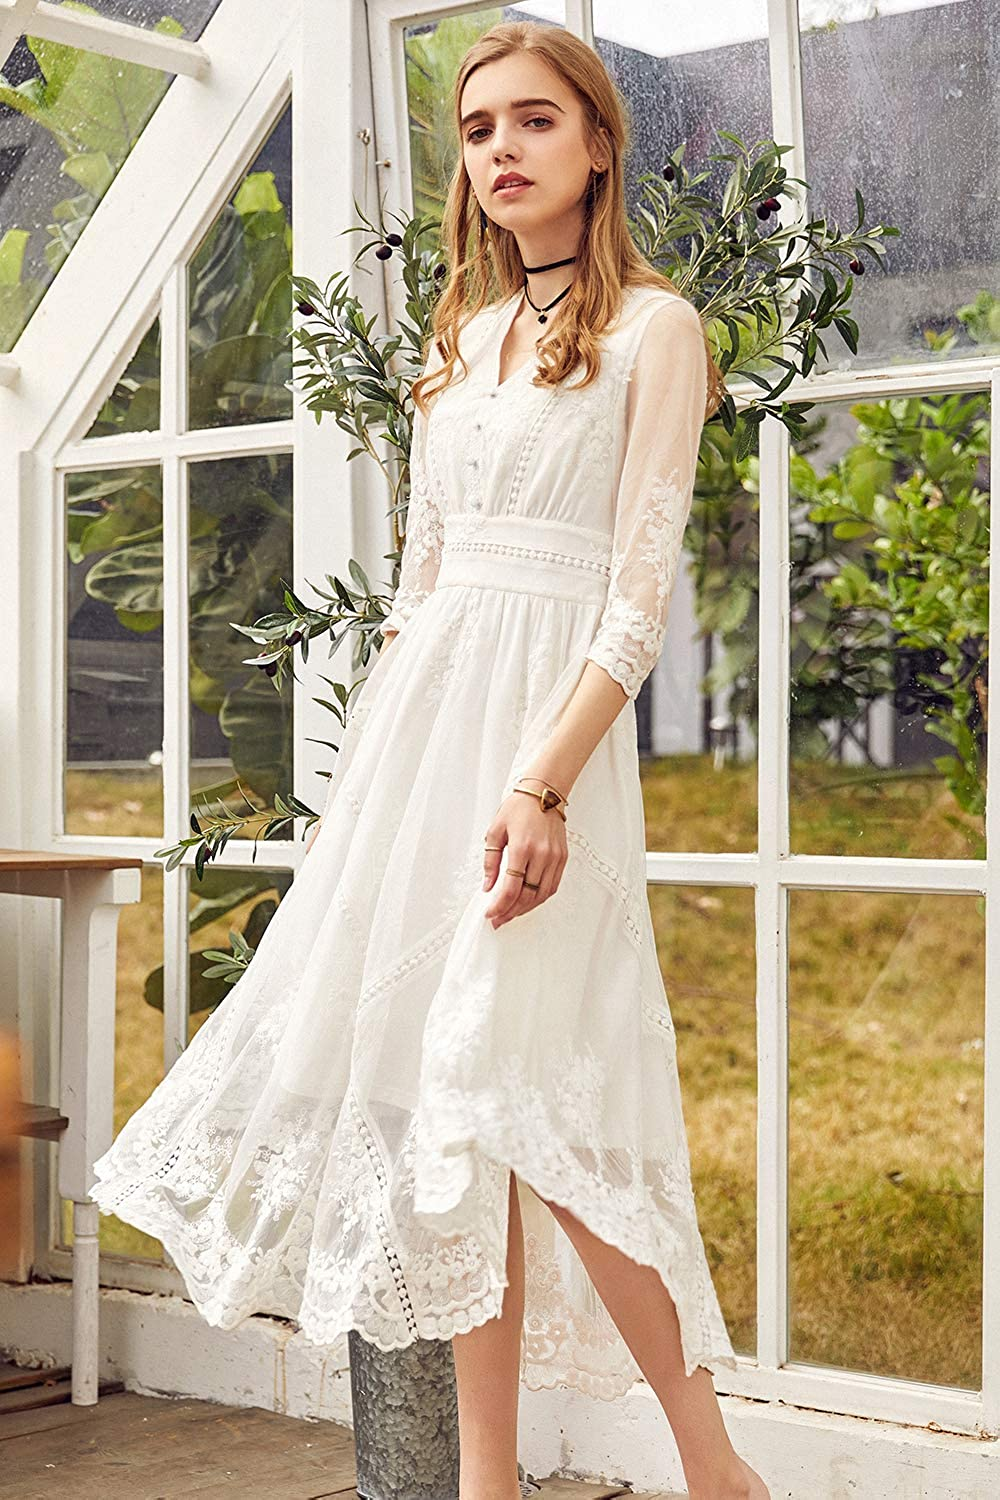 Old Fashioned Dresses | Old Dress Styles Artka Womens Lace Embroidered Maxi White Sheer Wedding Dress $81.00 AT vintagedancer.com